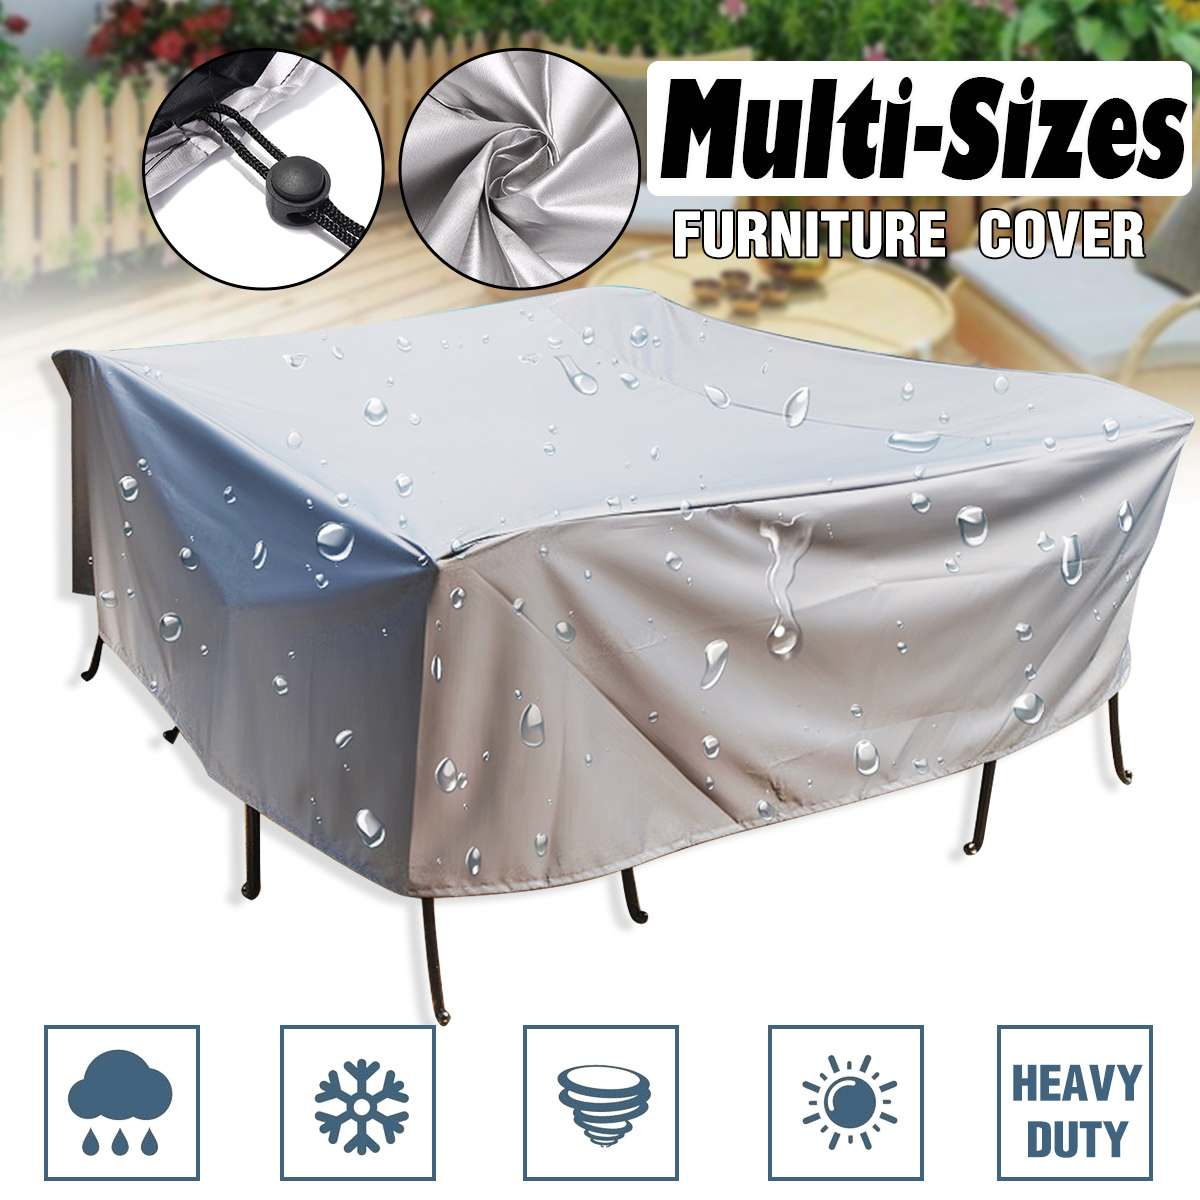 Outdoor Garden Chair Cover Outdoor Furniture Dust Cover Sofa Waterproof  PVC Coating Cloth Cover Terrace Furniture Cover